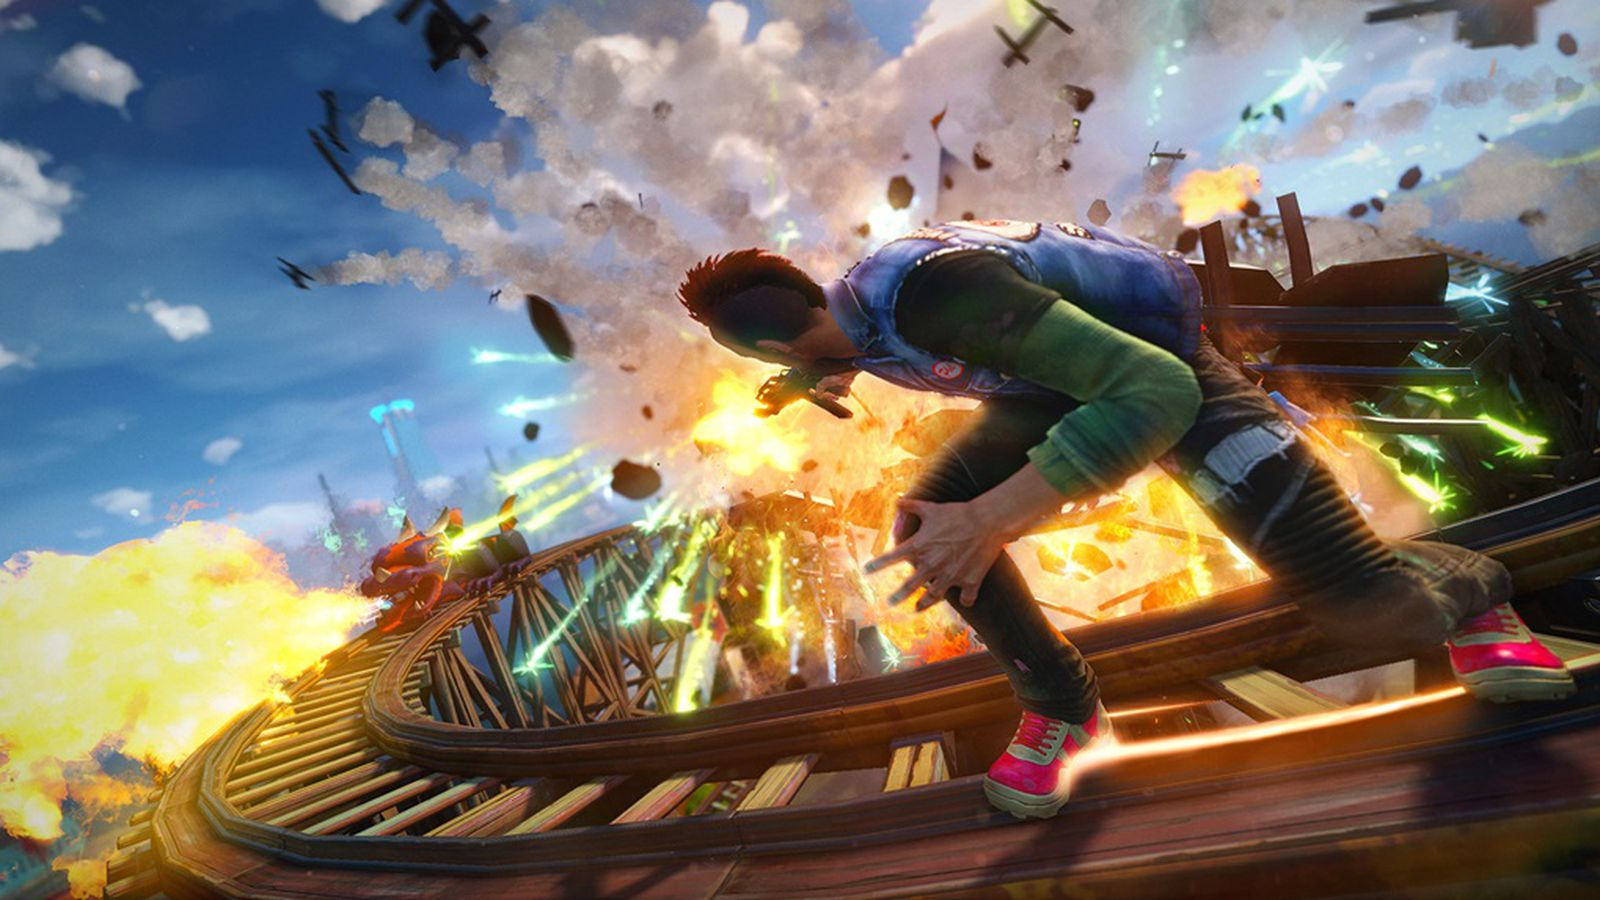 Xbox One Bundles For Sunset Overdrive And Madden NFL 15 Are On The Way Polygon